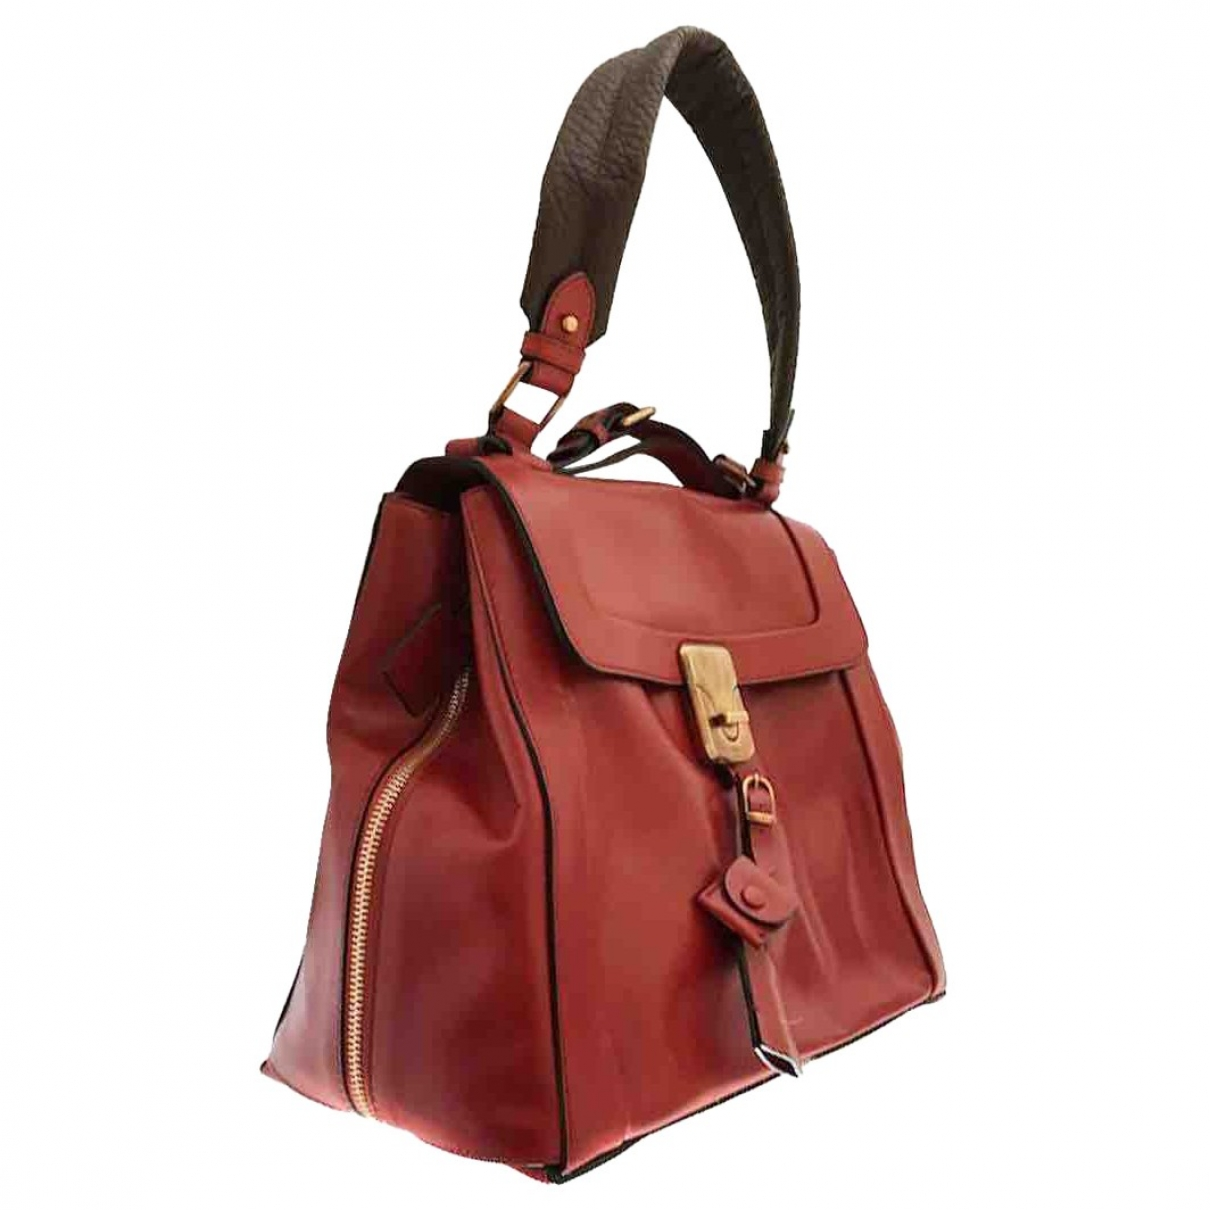 Chloé \N Red Leather handbag for Women \N